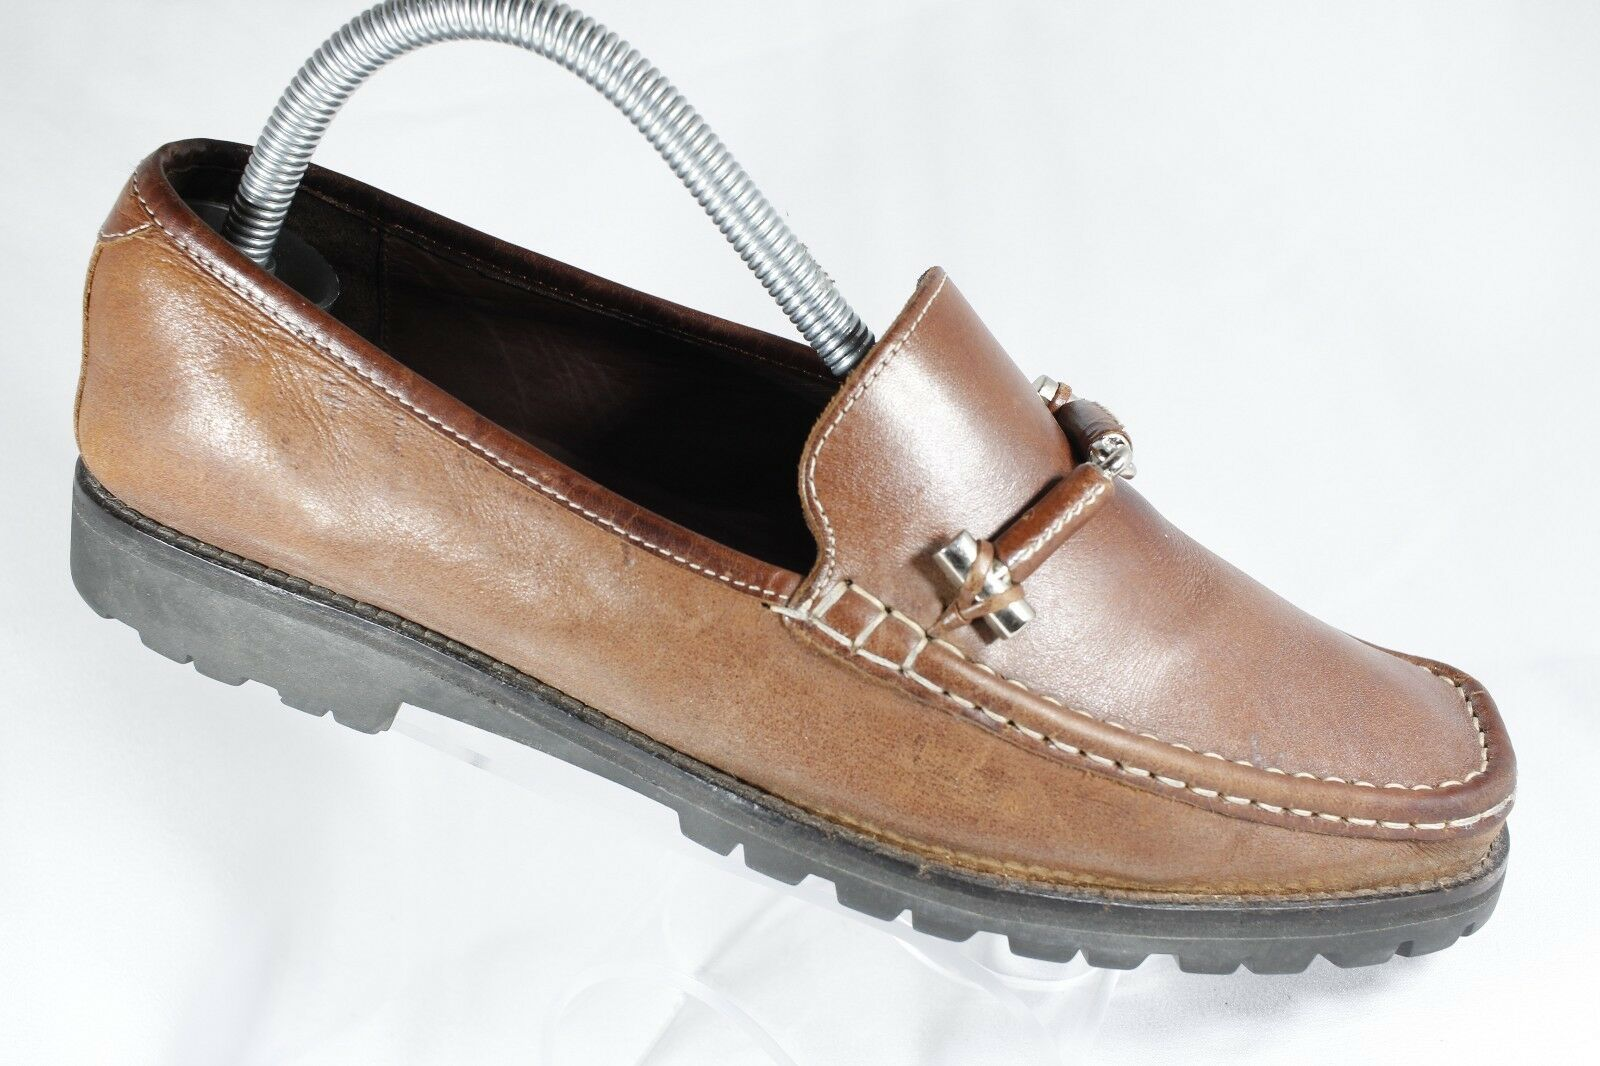 Cole Haan Women's Size 8.5B Brown Leather Horse Bit Casual Loafers shoes D18086